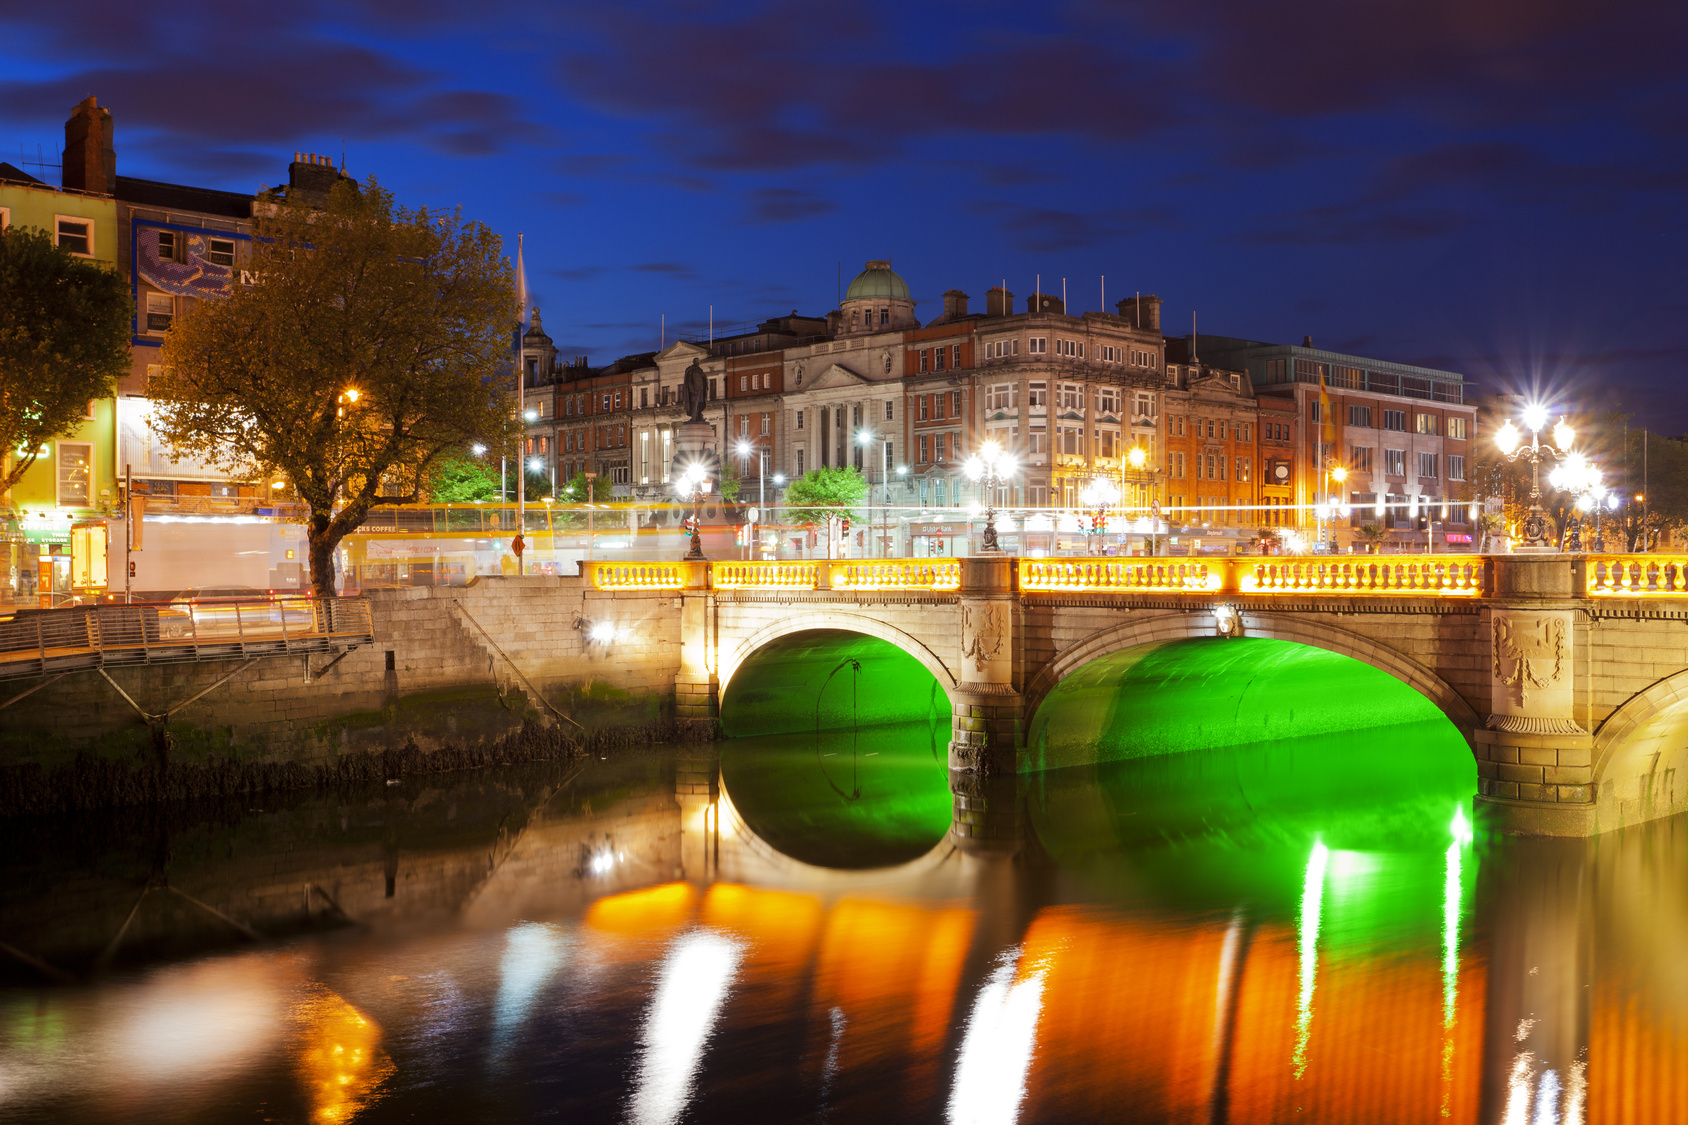 Dublin at night down by the Liffey River